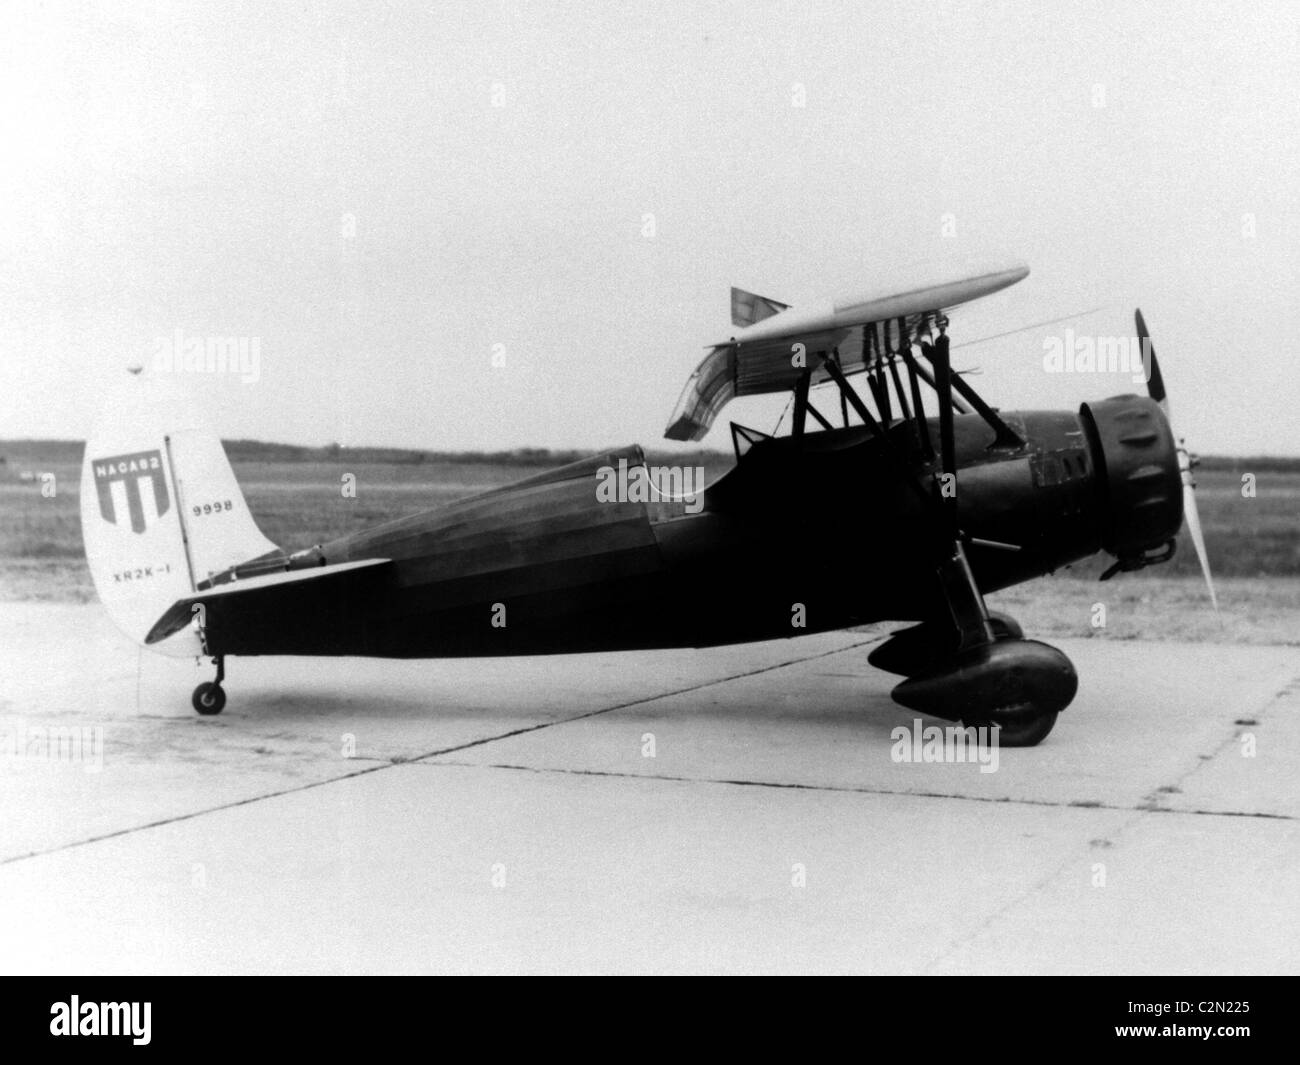 Fairchild XR2L-1, Fairchild 22 monoplane aircraft - Stock Image